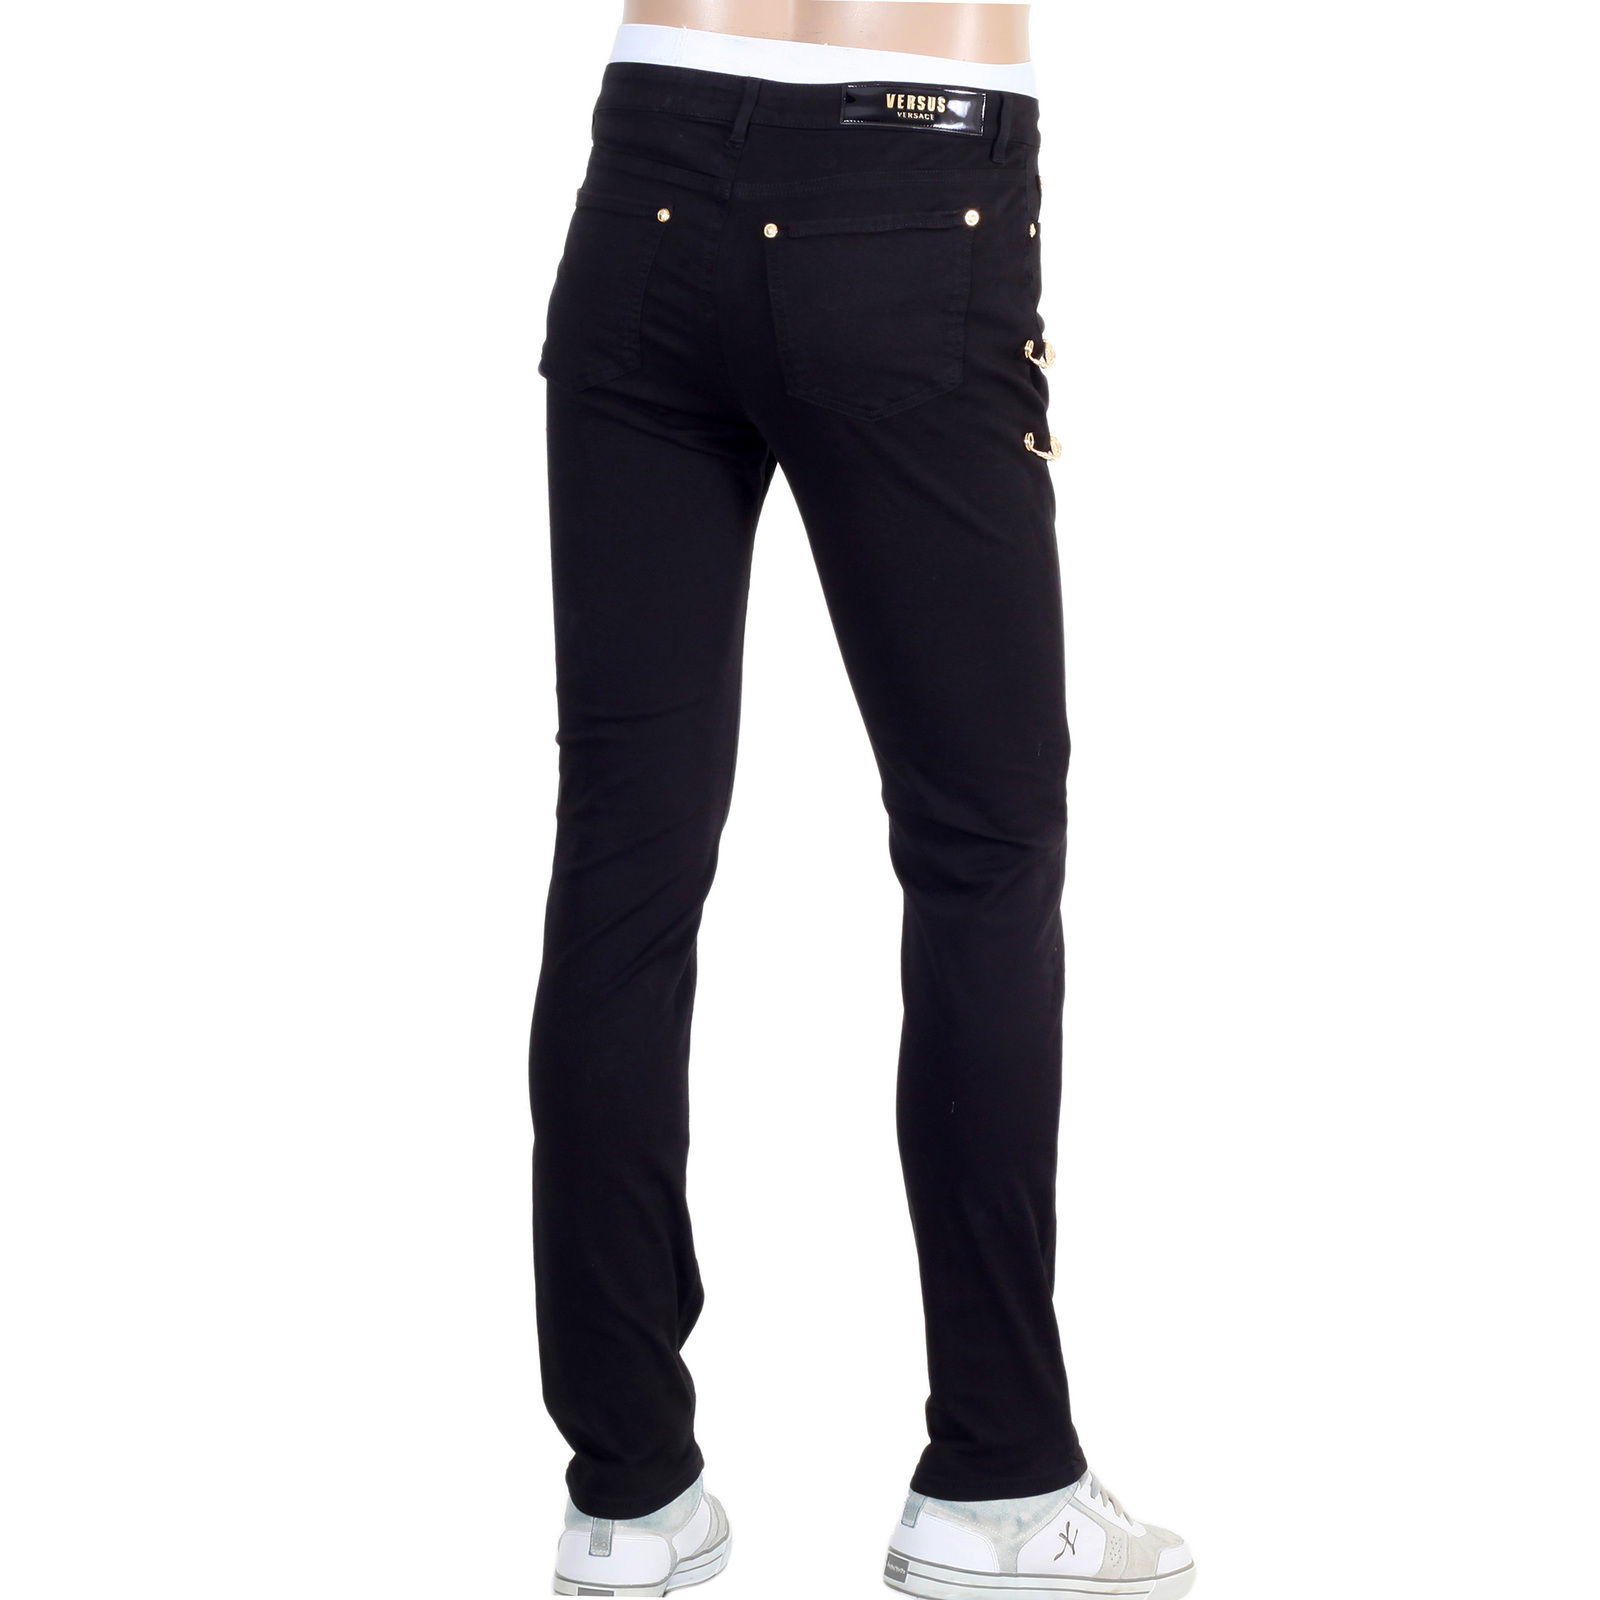 Buy Now! Versace Black Jeans | Togged